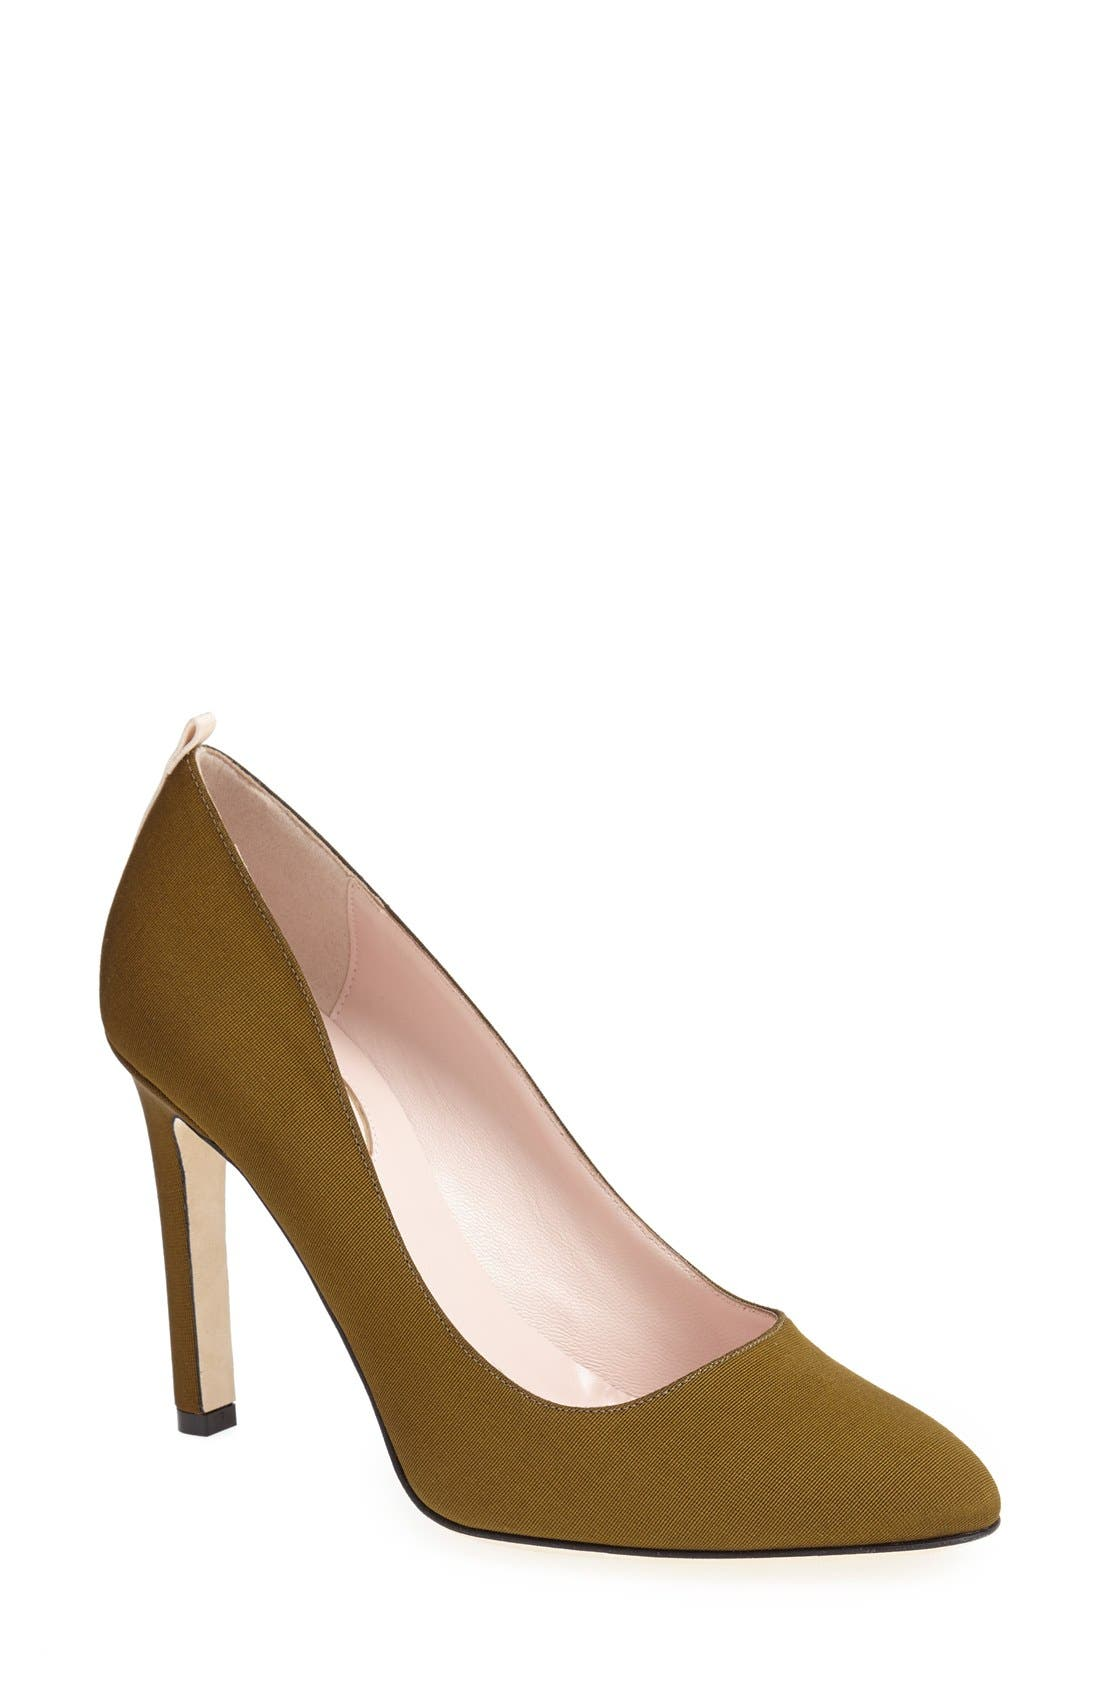 SJP 'Lady' Pump,                         Main,                         color, 300